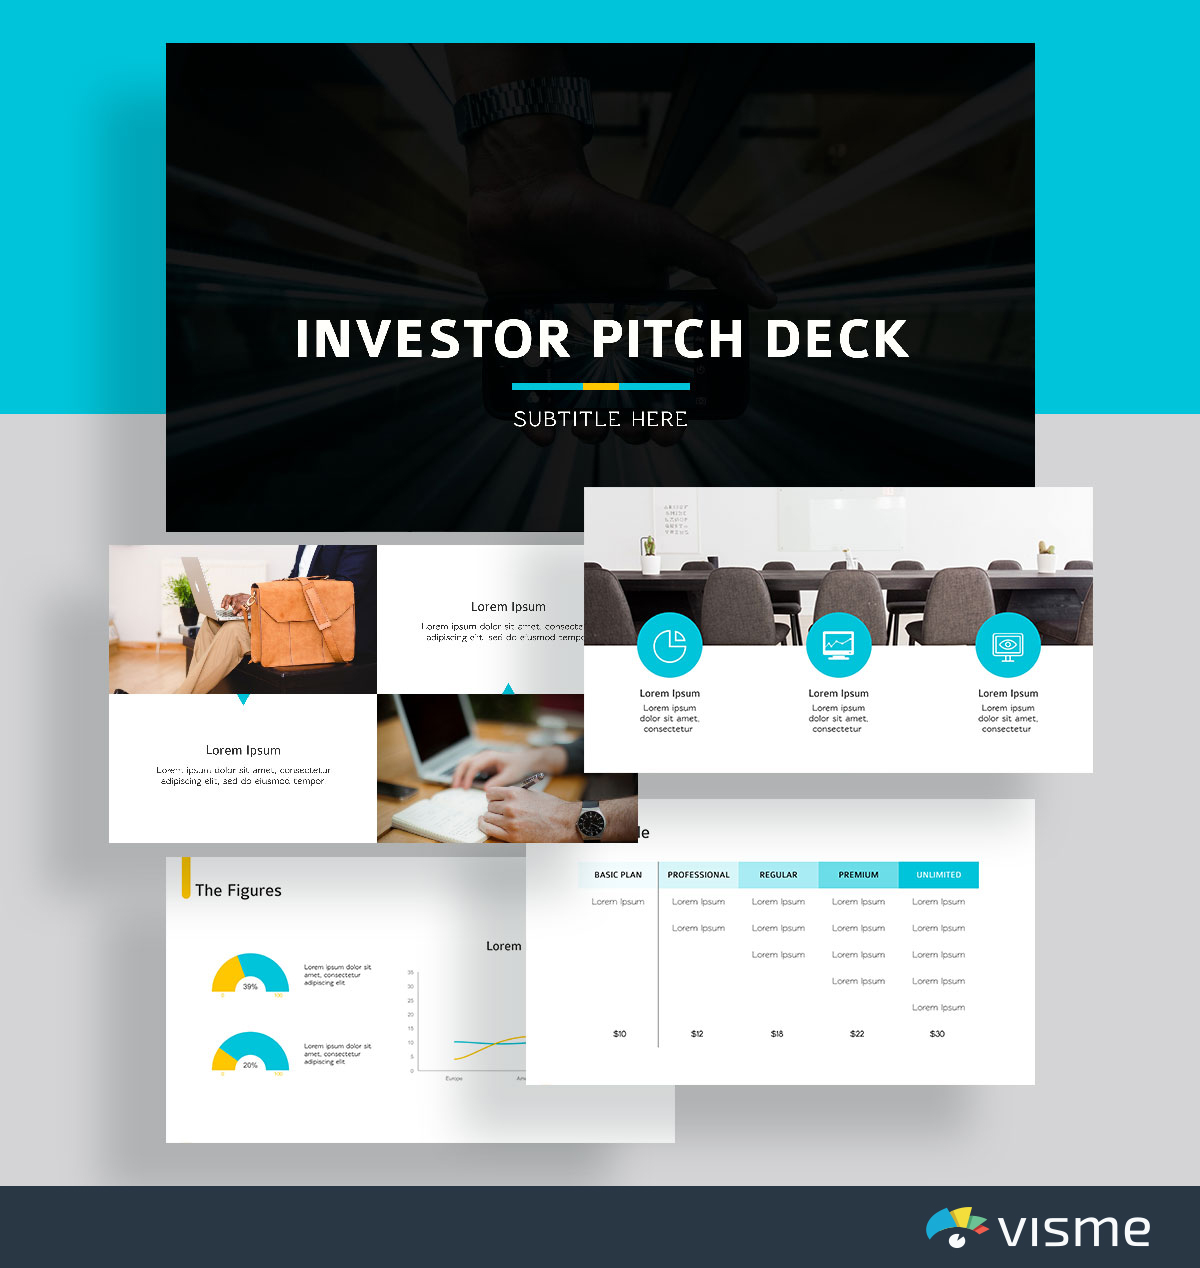 presentation slides - investor pitch deck template visme